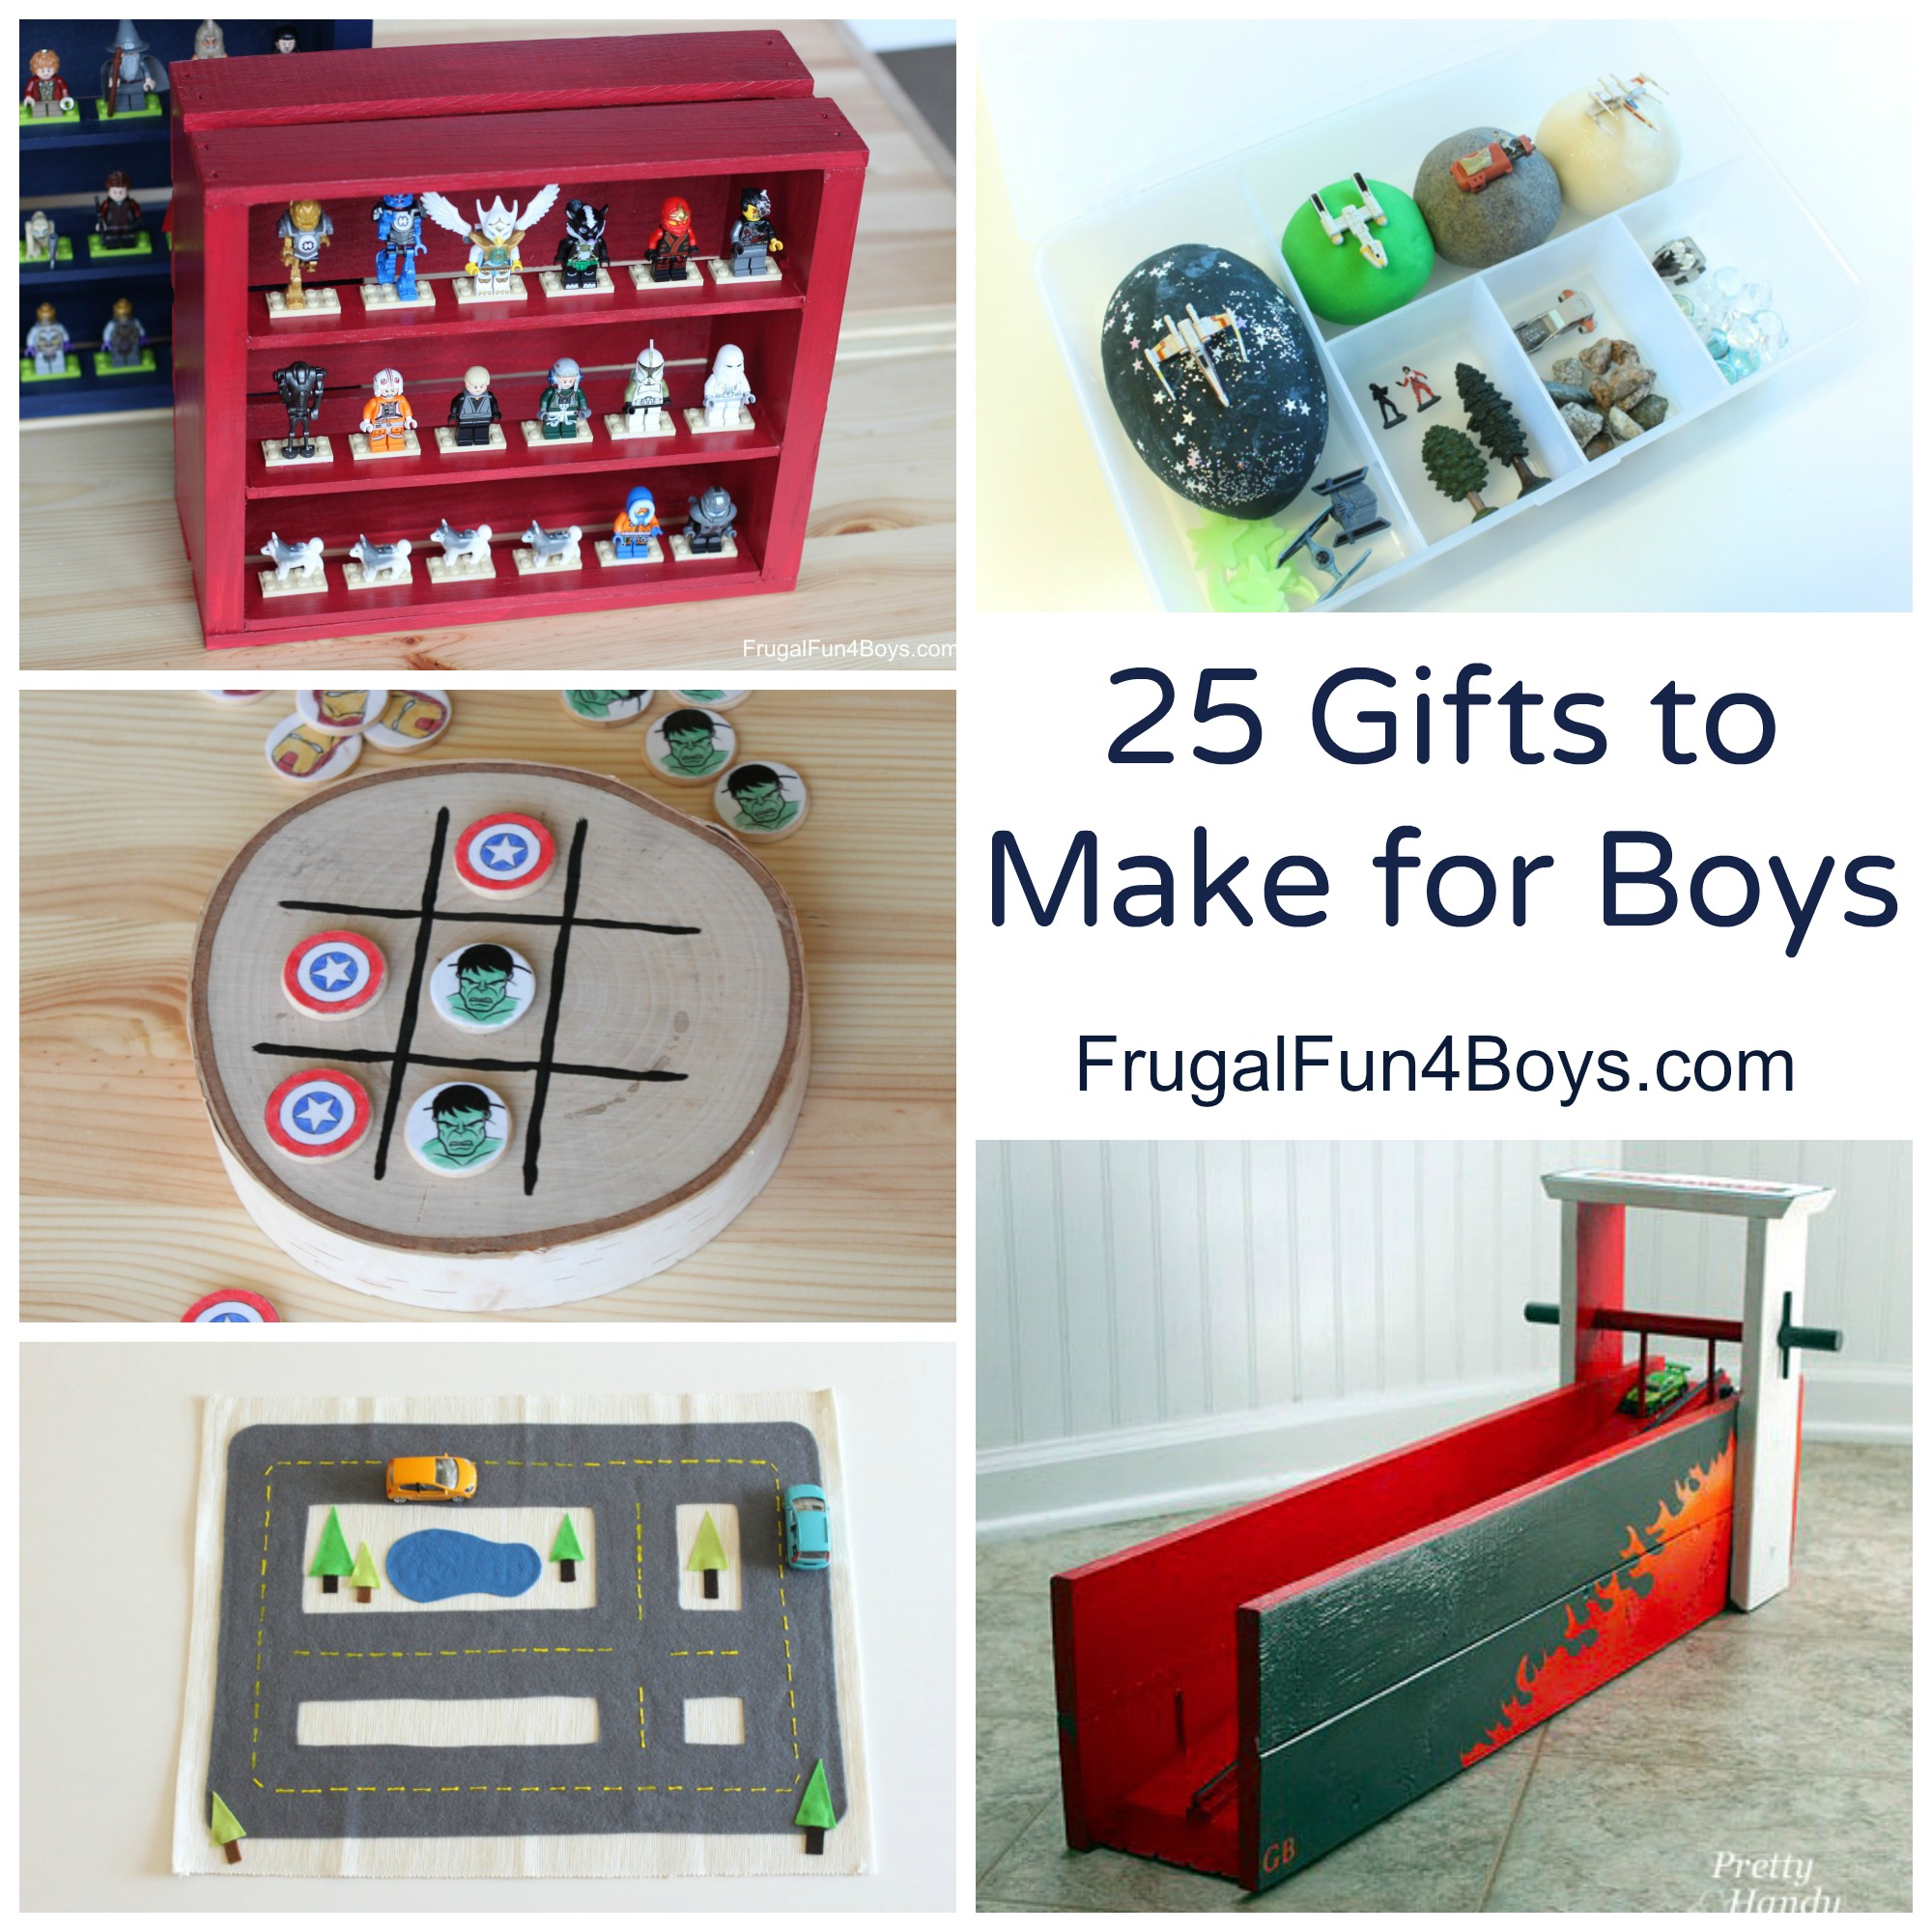 25 Gifts to Make for Boys - Homemade Gift Ideas that Boys will Go for!